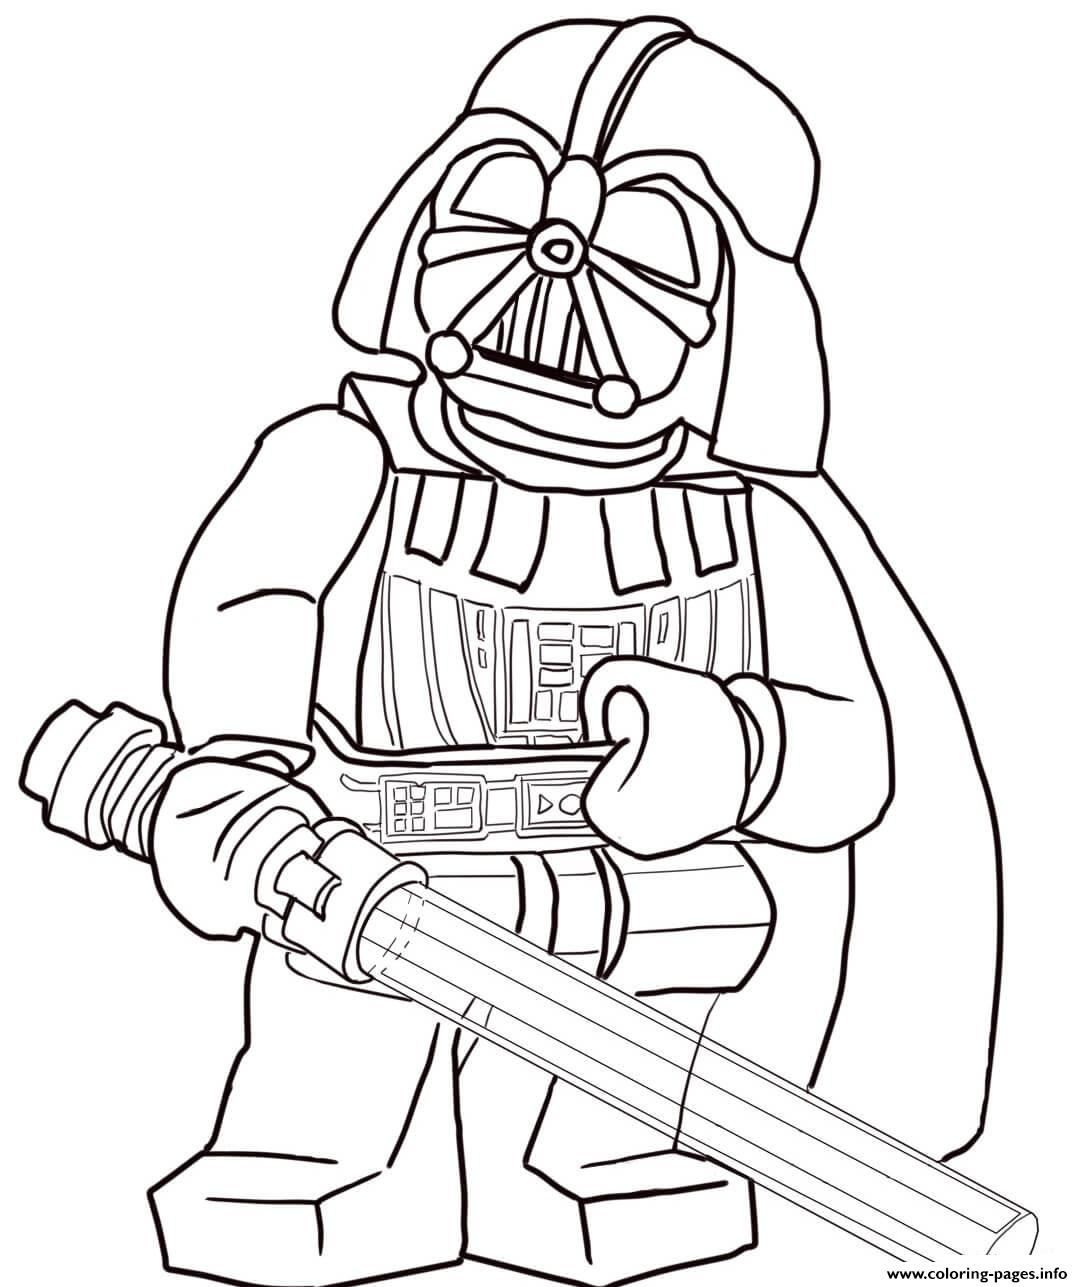 1083x1287 Lego Star Wars Darth Vader Coloring Pages Printable In Page